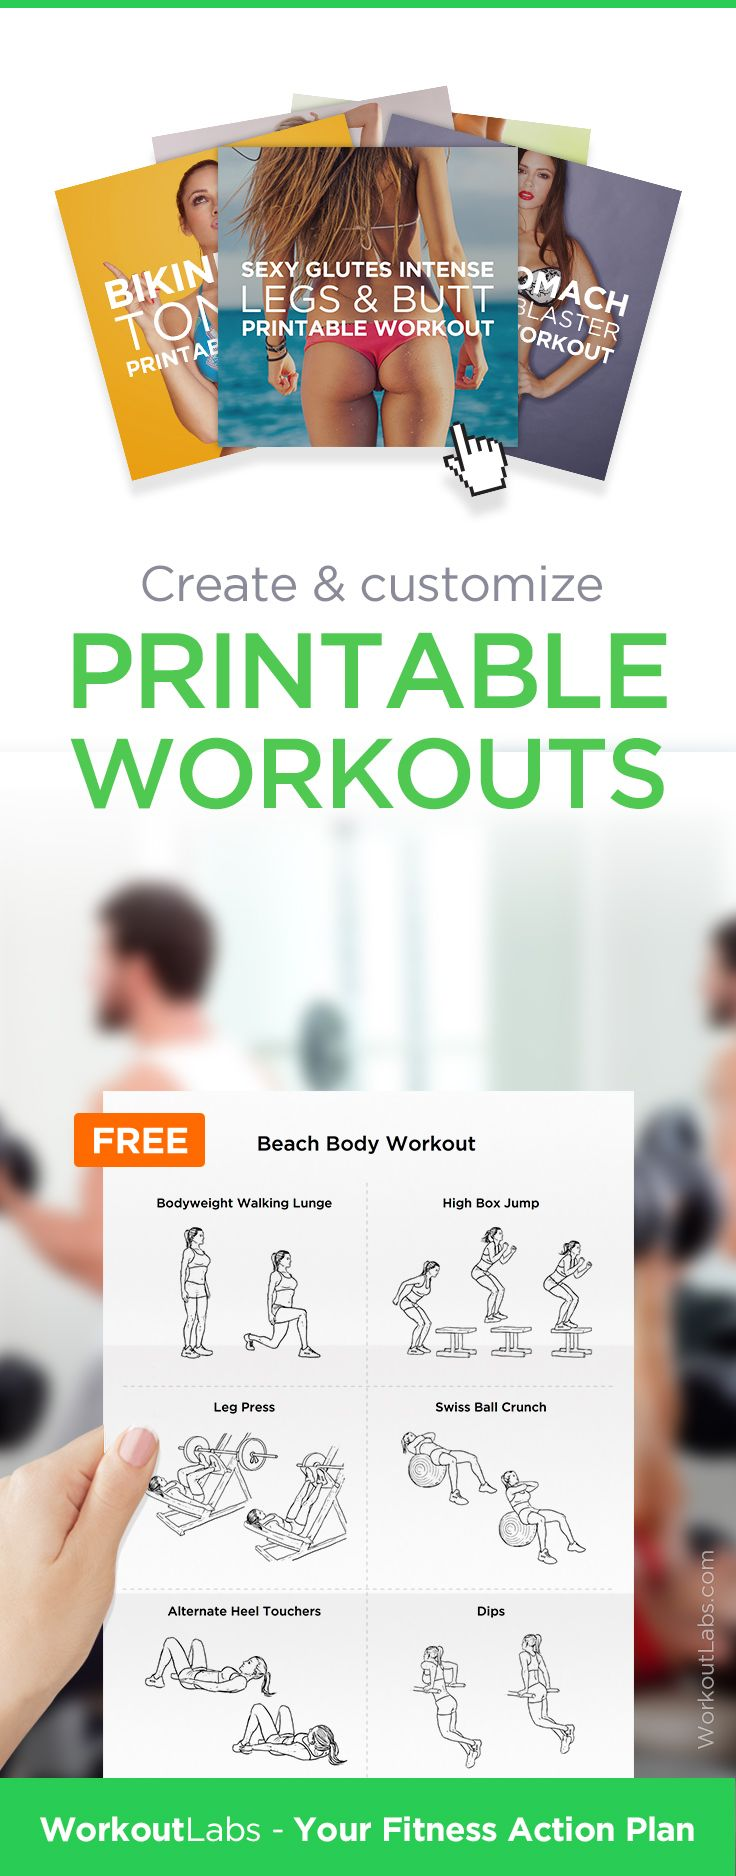 #TheDailySimple for 6/11: A handy resource for travel: Create and customize printable workout plans with exercise illustrations, FREE at http://WorkoutLabs.com –Your Fitness Action Plan #fitness #health #workouts #free